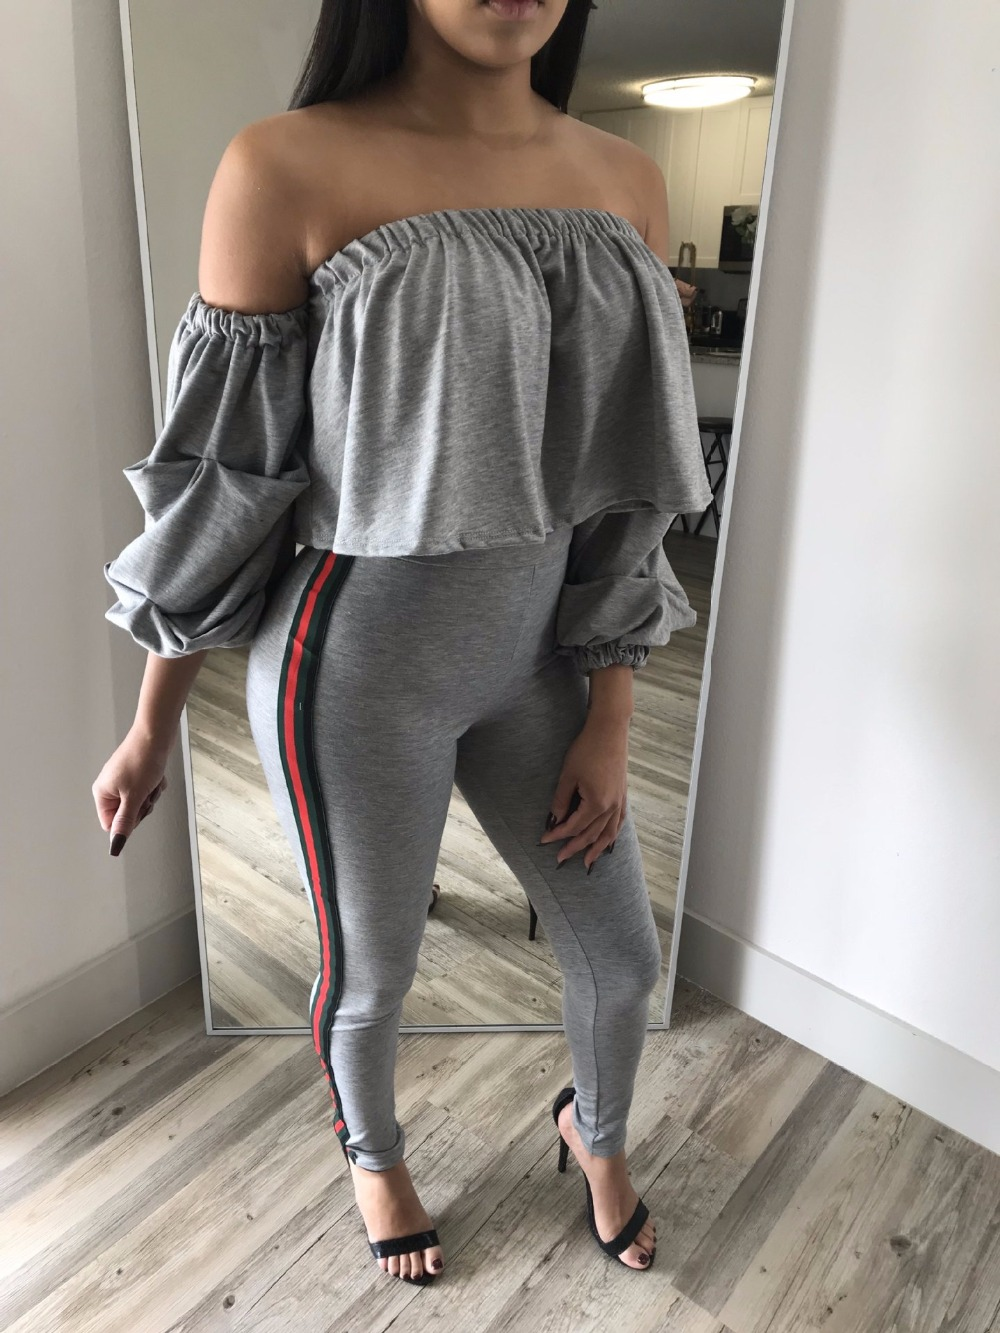 FGHGF 2017 Ruffle Bodycon Two Piece Set Womens Sexy Off Shoulder Side Striped Crop Top + Jogger Set 2-Piece Party Jumpsuit CY-13